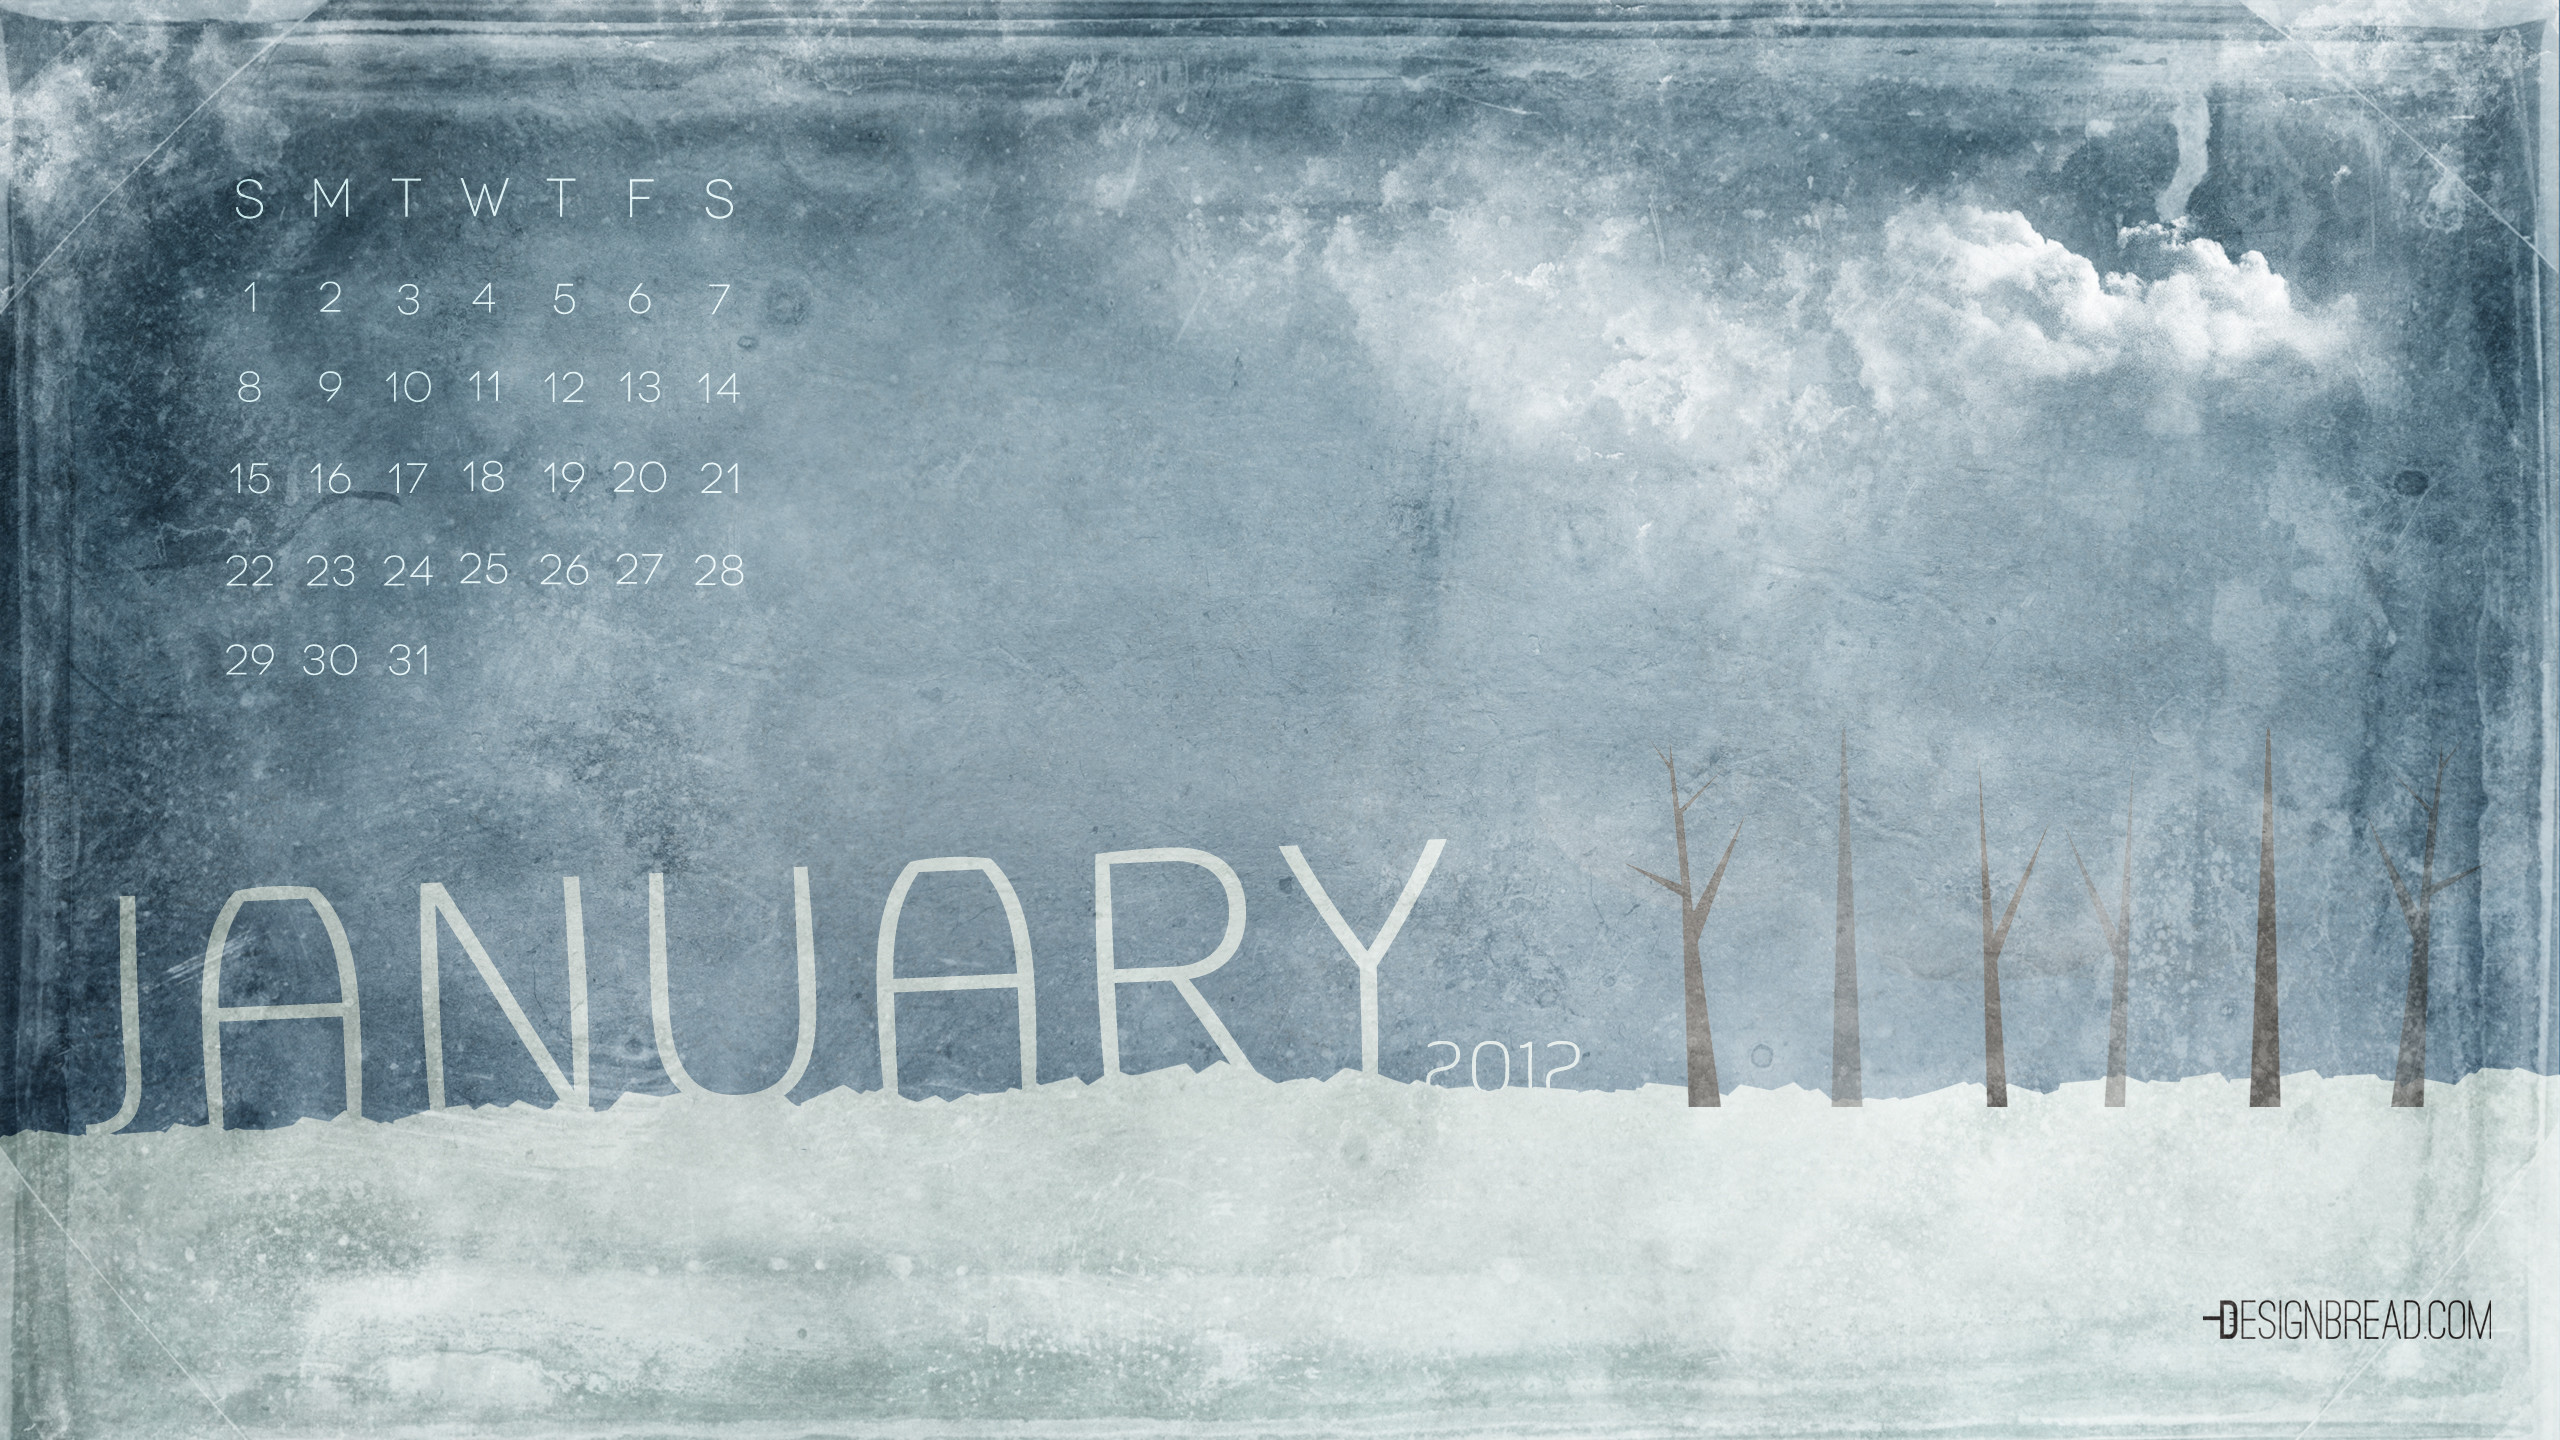 January 2018 Desktop Wallpaper 61 images 2560x1440